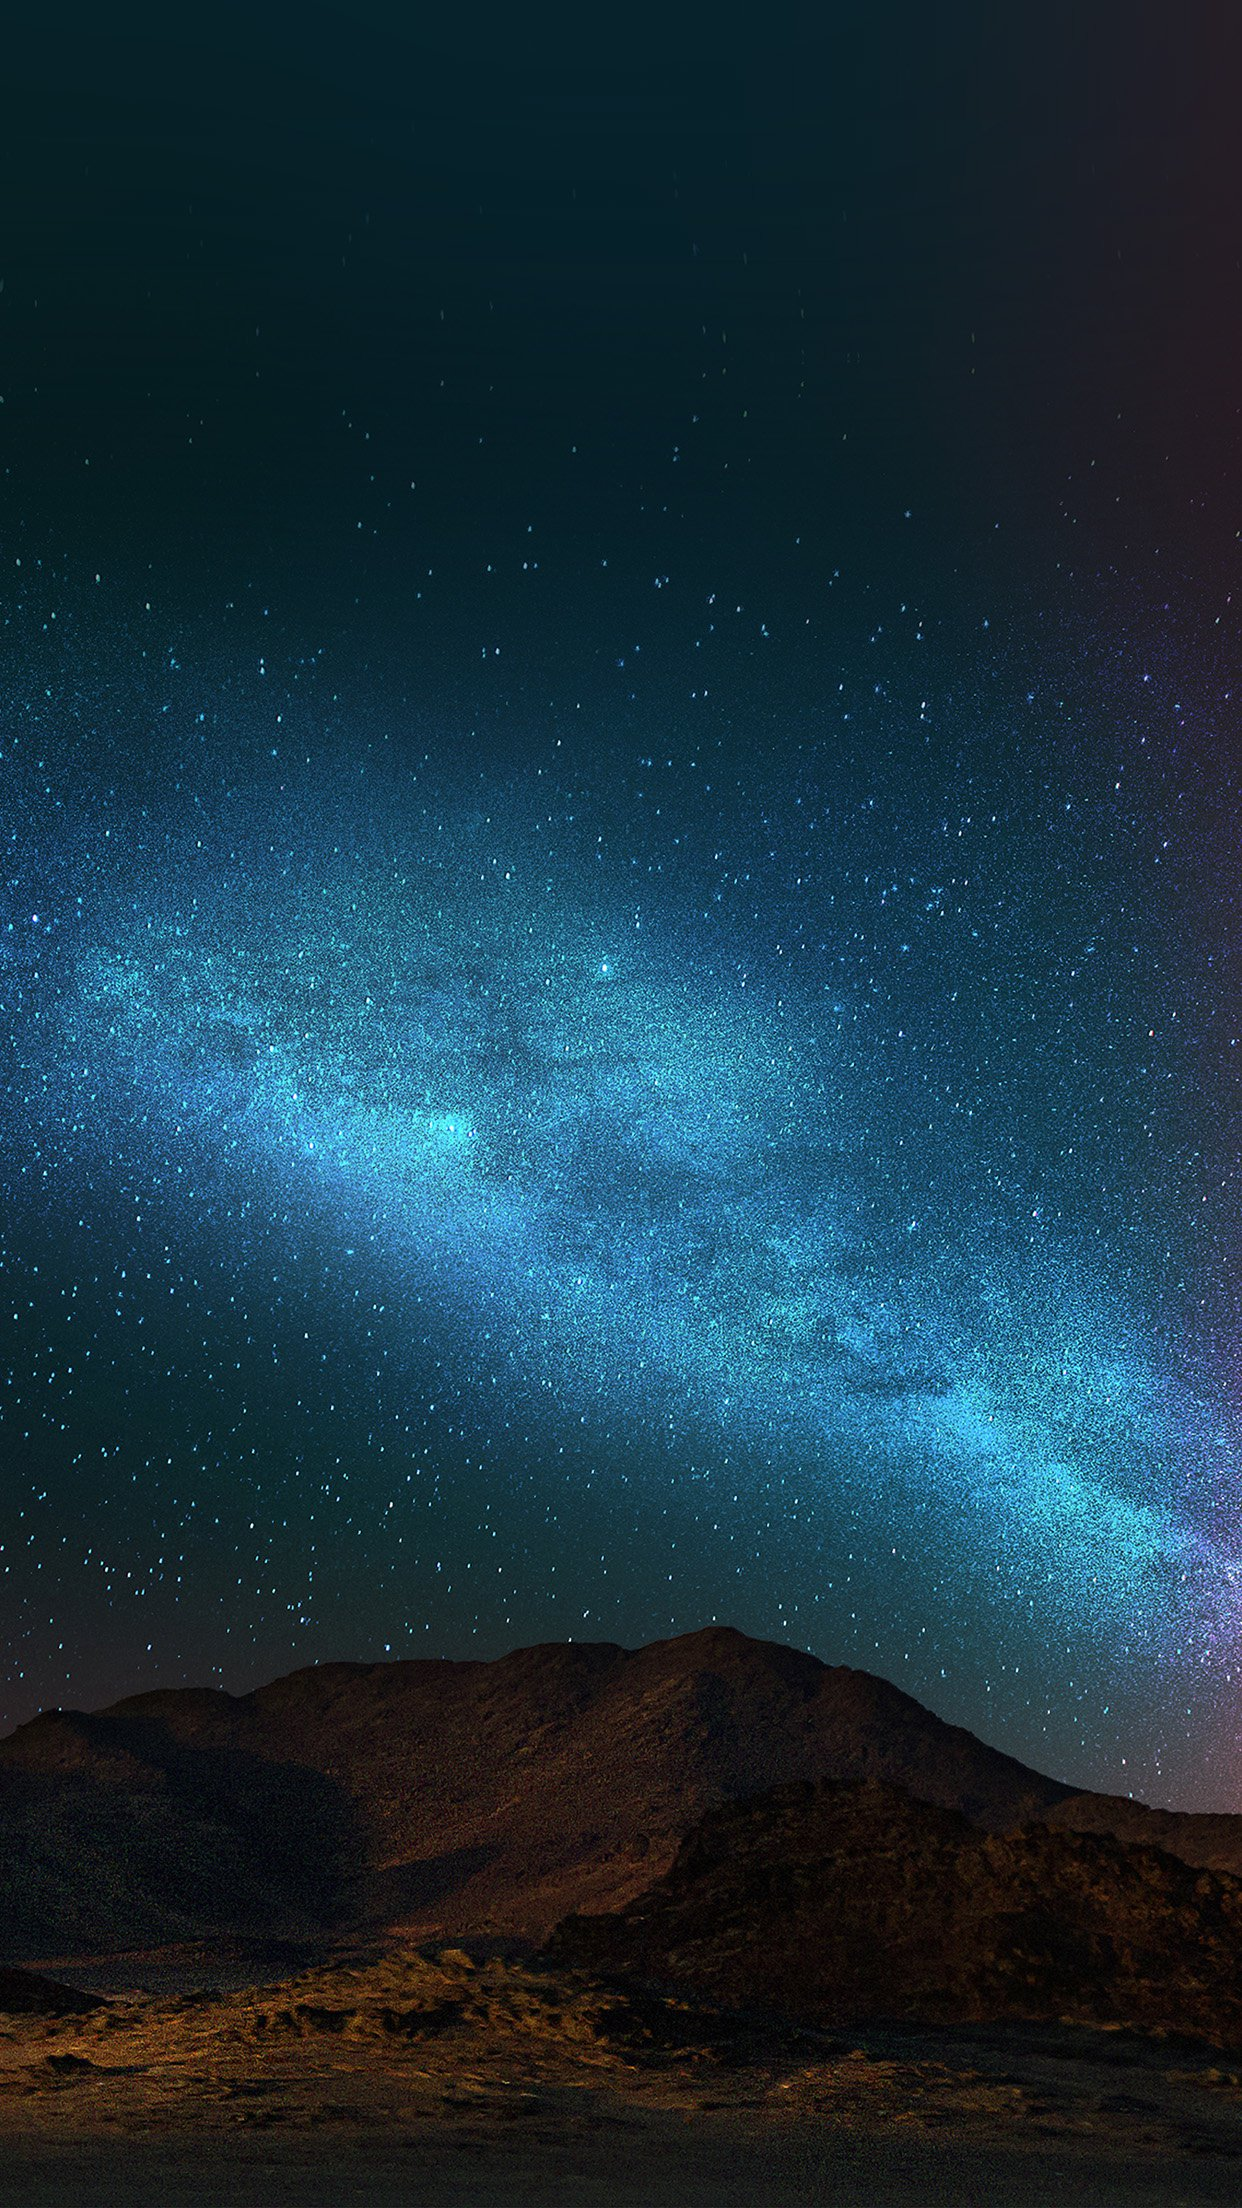 Night Sky Dark Color Star Shining Nature Android wallpaper